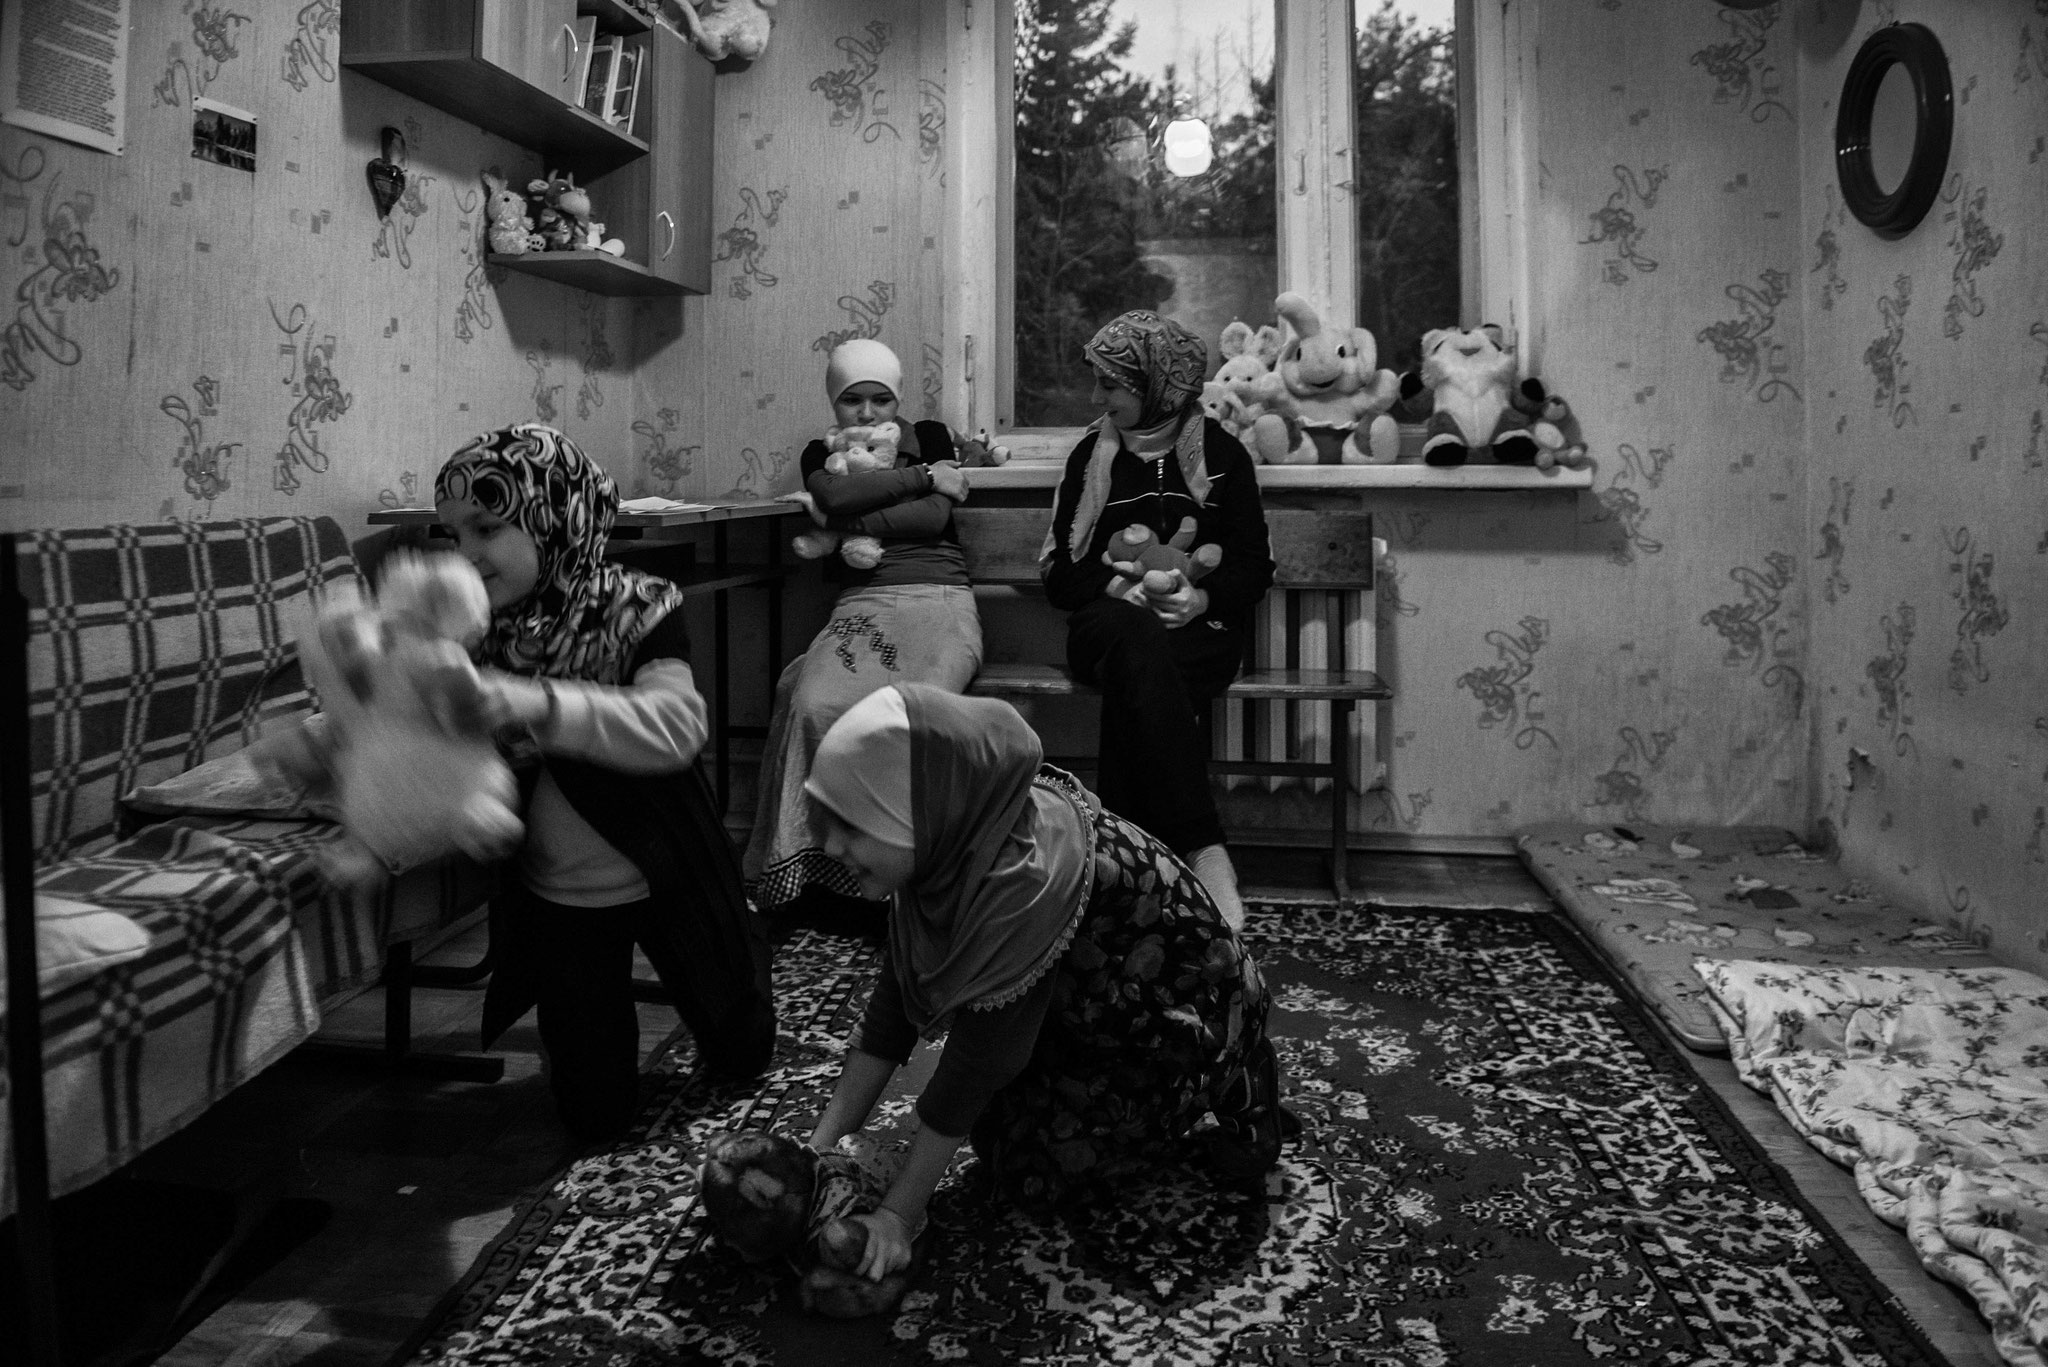 Collective House for IDPs, a former youth camp. Occupied by a community of Crimea Tartars. near Kiev Nov. 2014